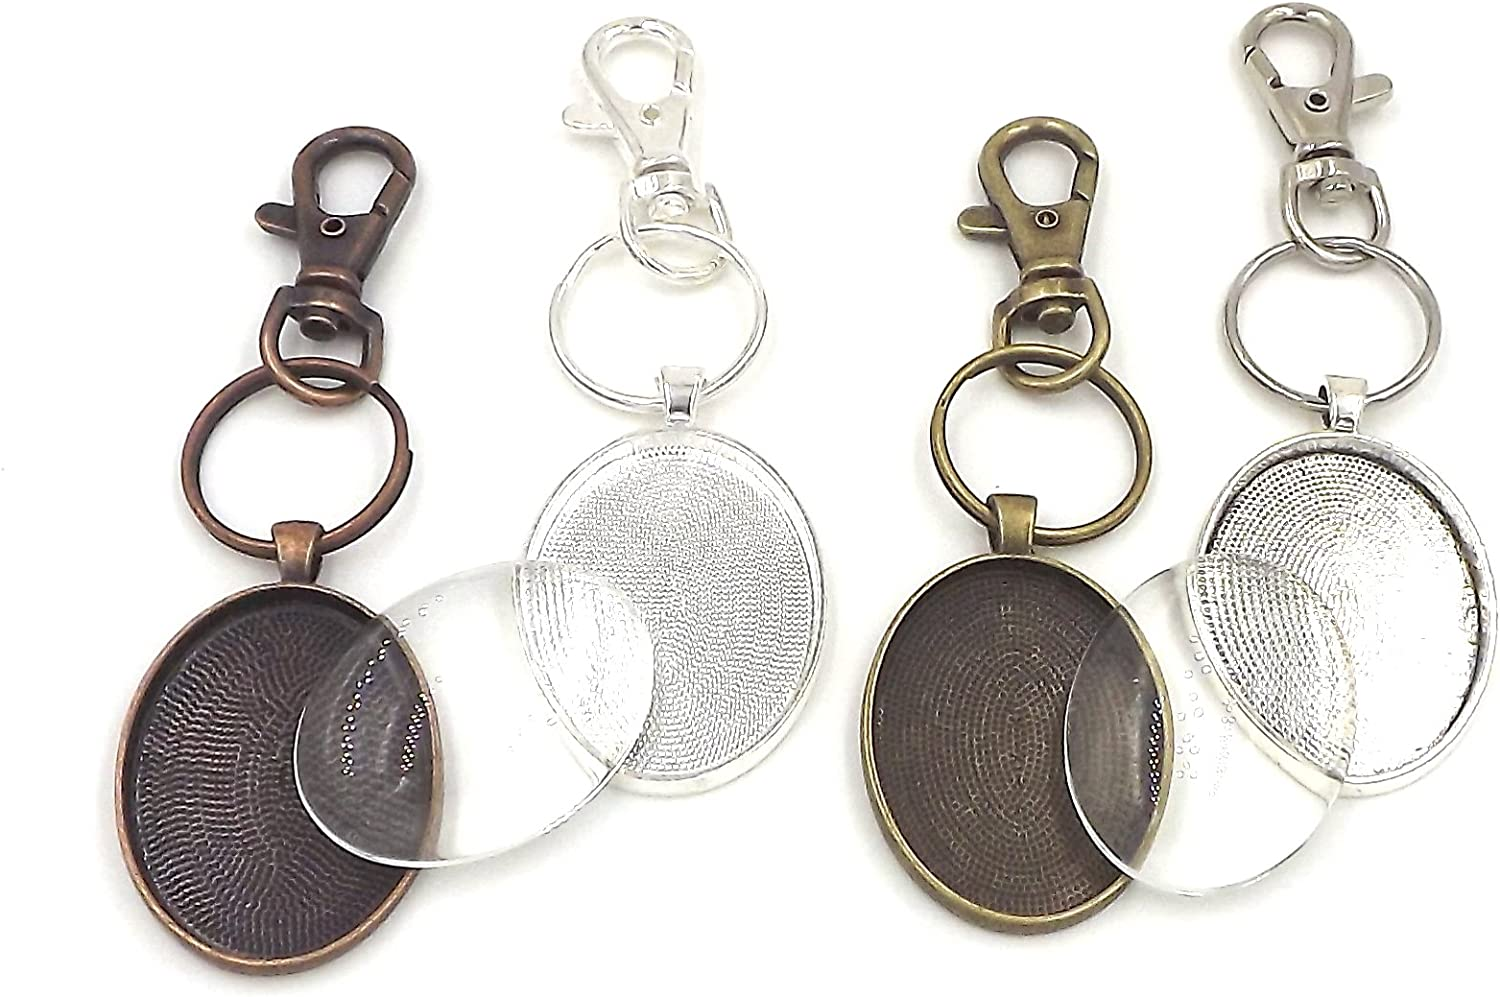 30X40mm oval pendant trays key chains in your choice of color